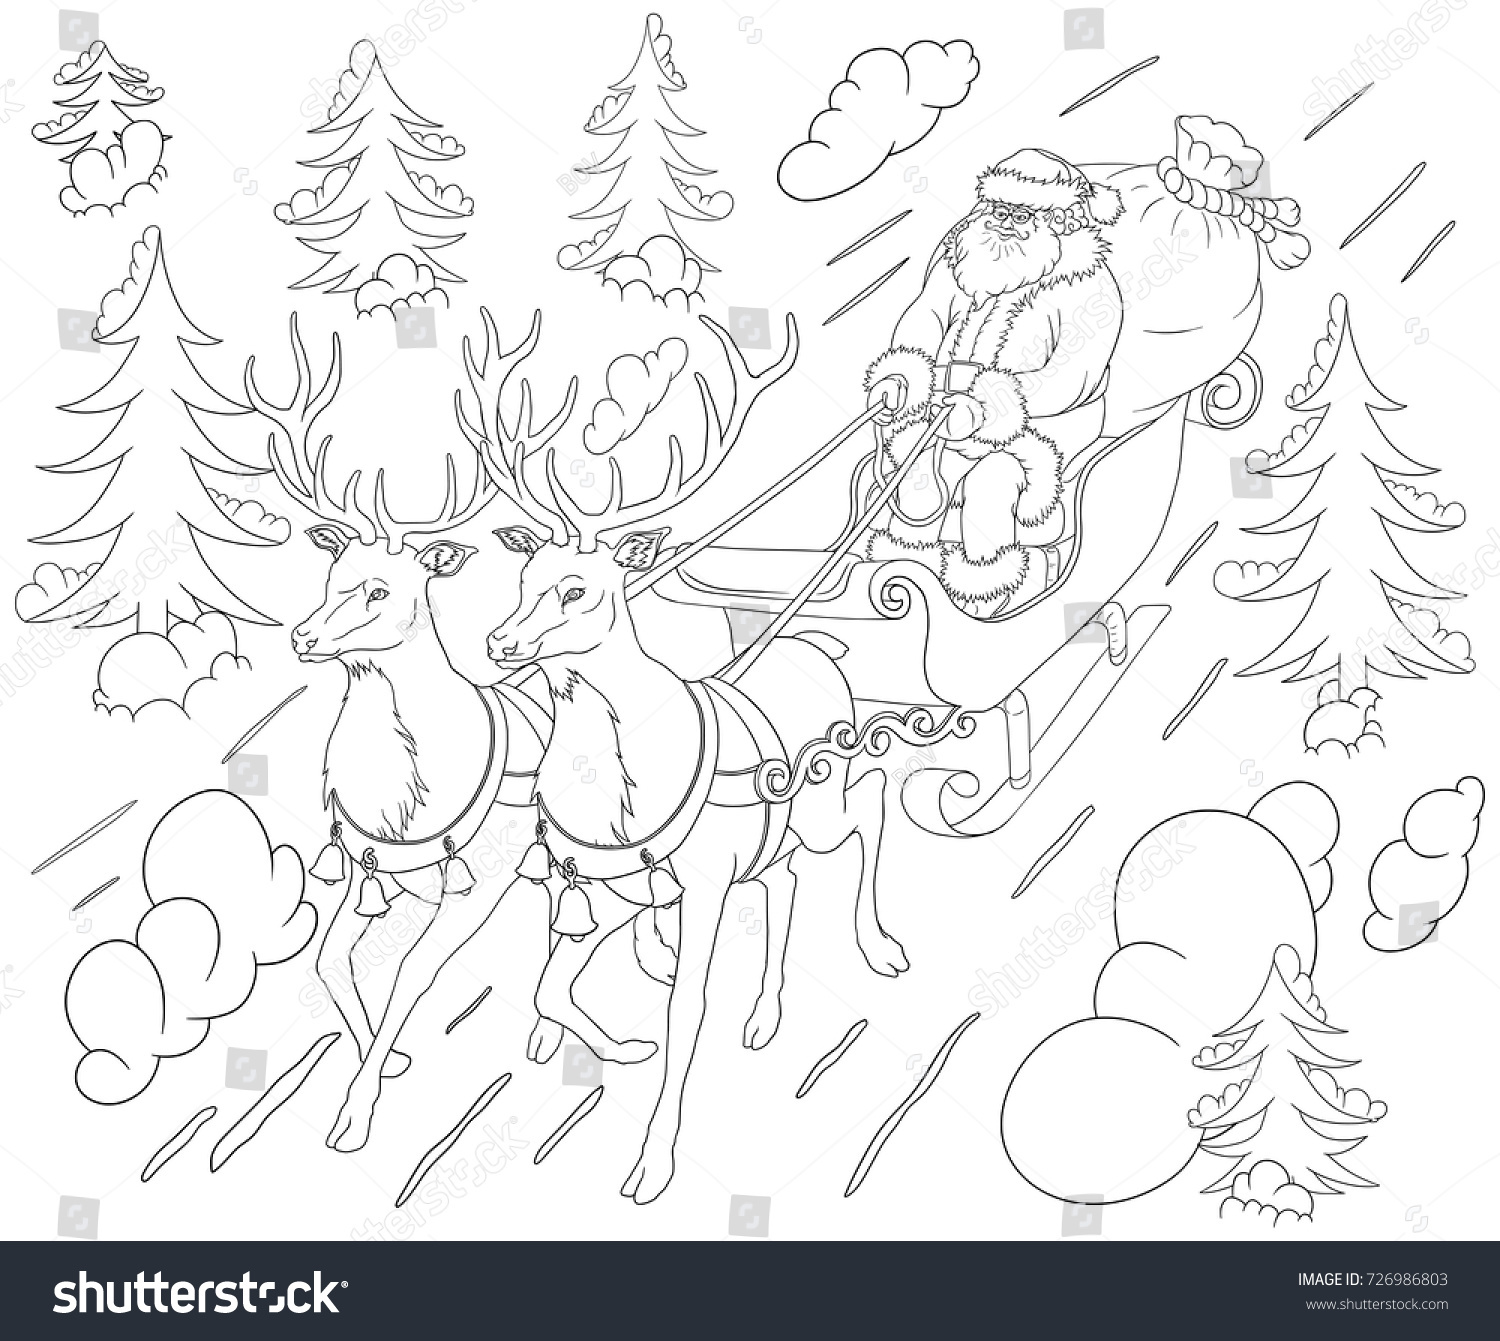 new year with santa claus coloring book santa on a sleigh rushes in the middle